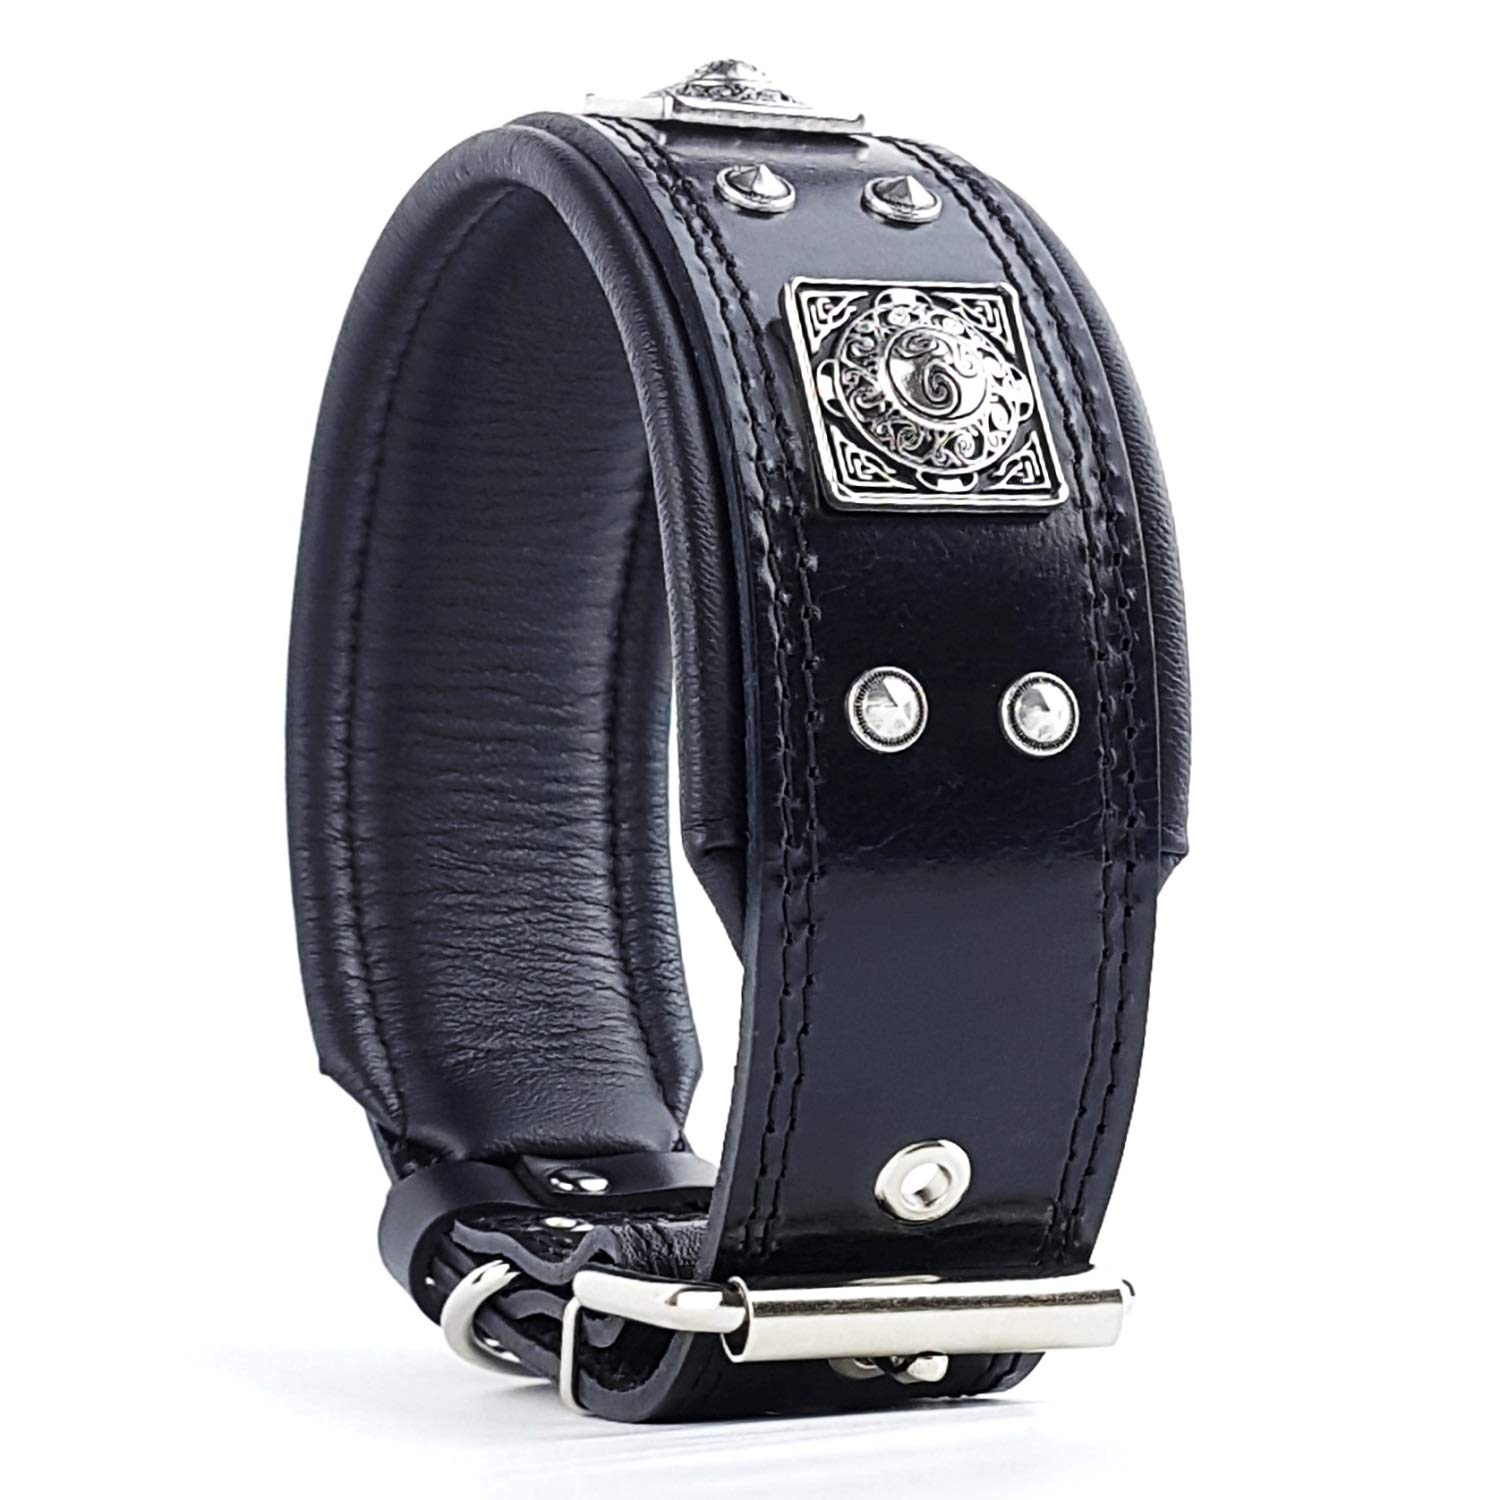 Bestia The Black Eros Collar for Big Dogs. 2.5 inch Wide & Soft Padded